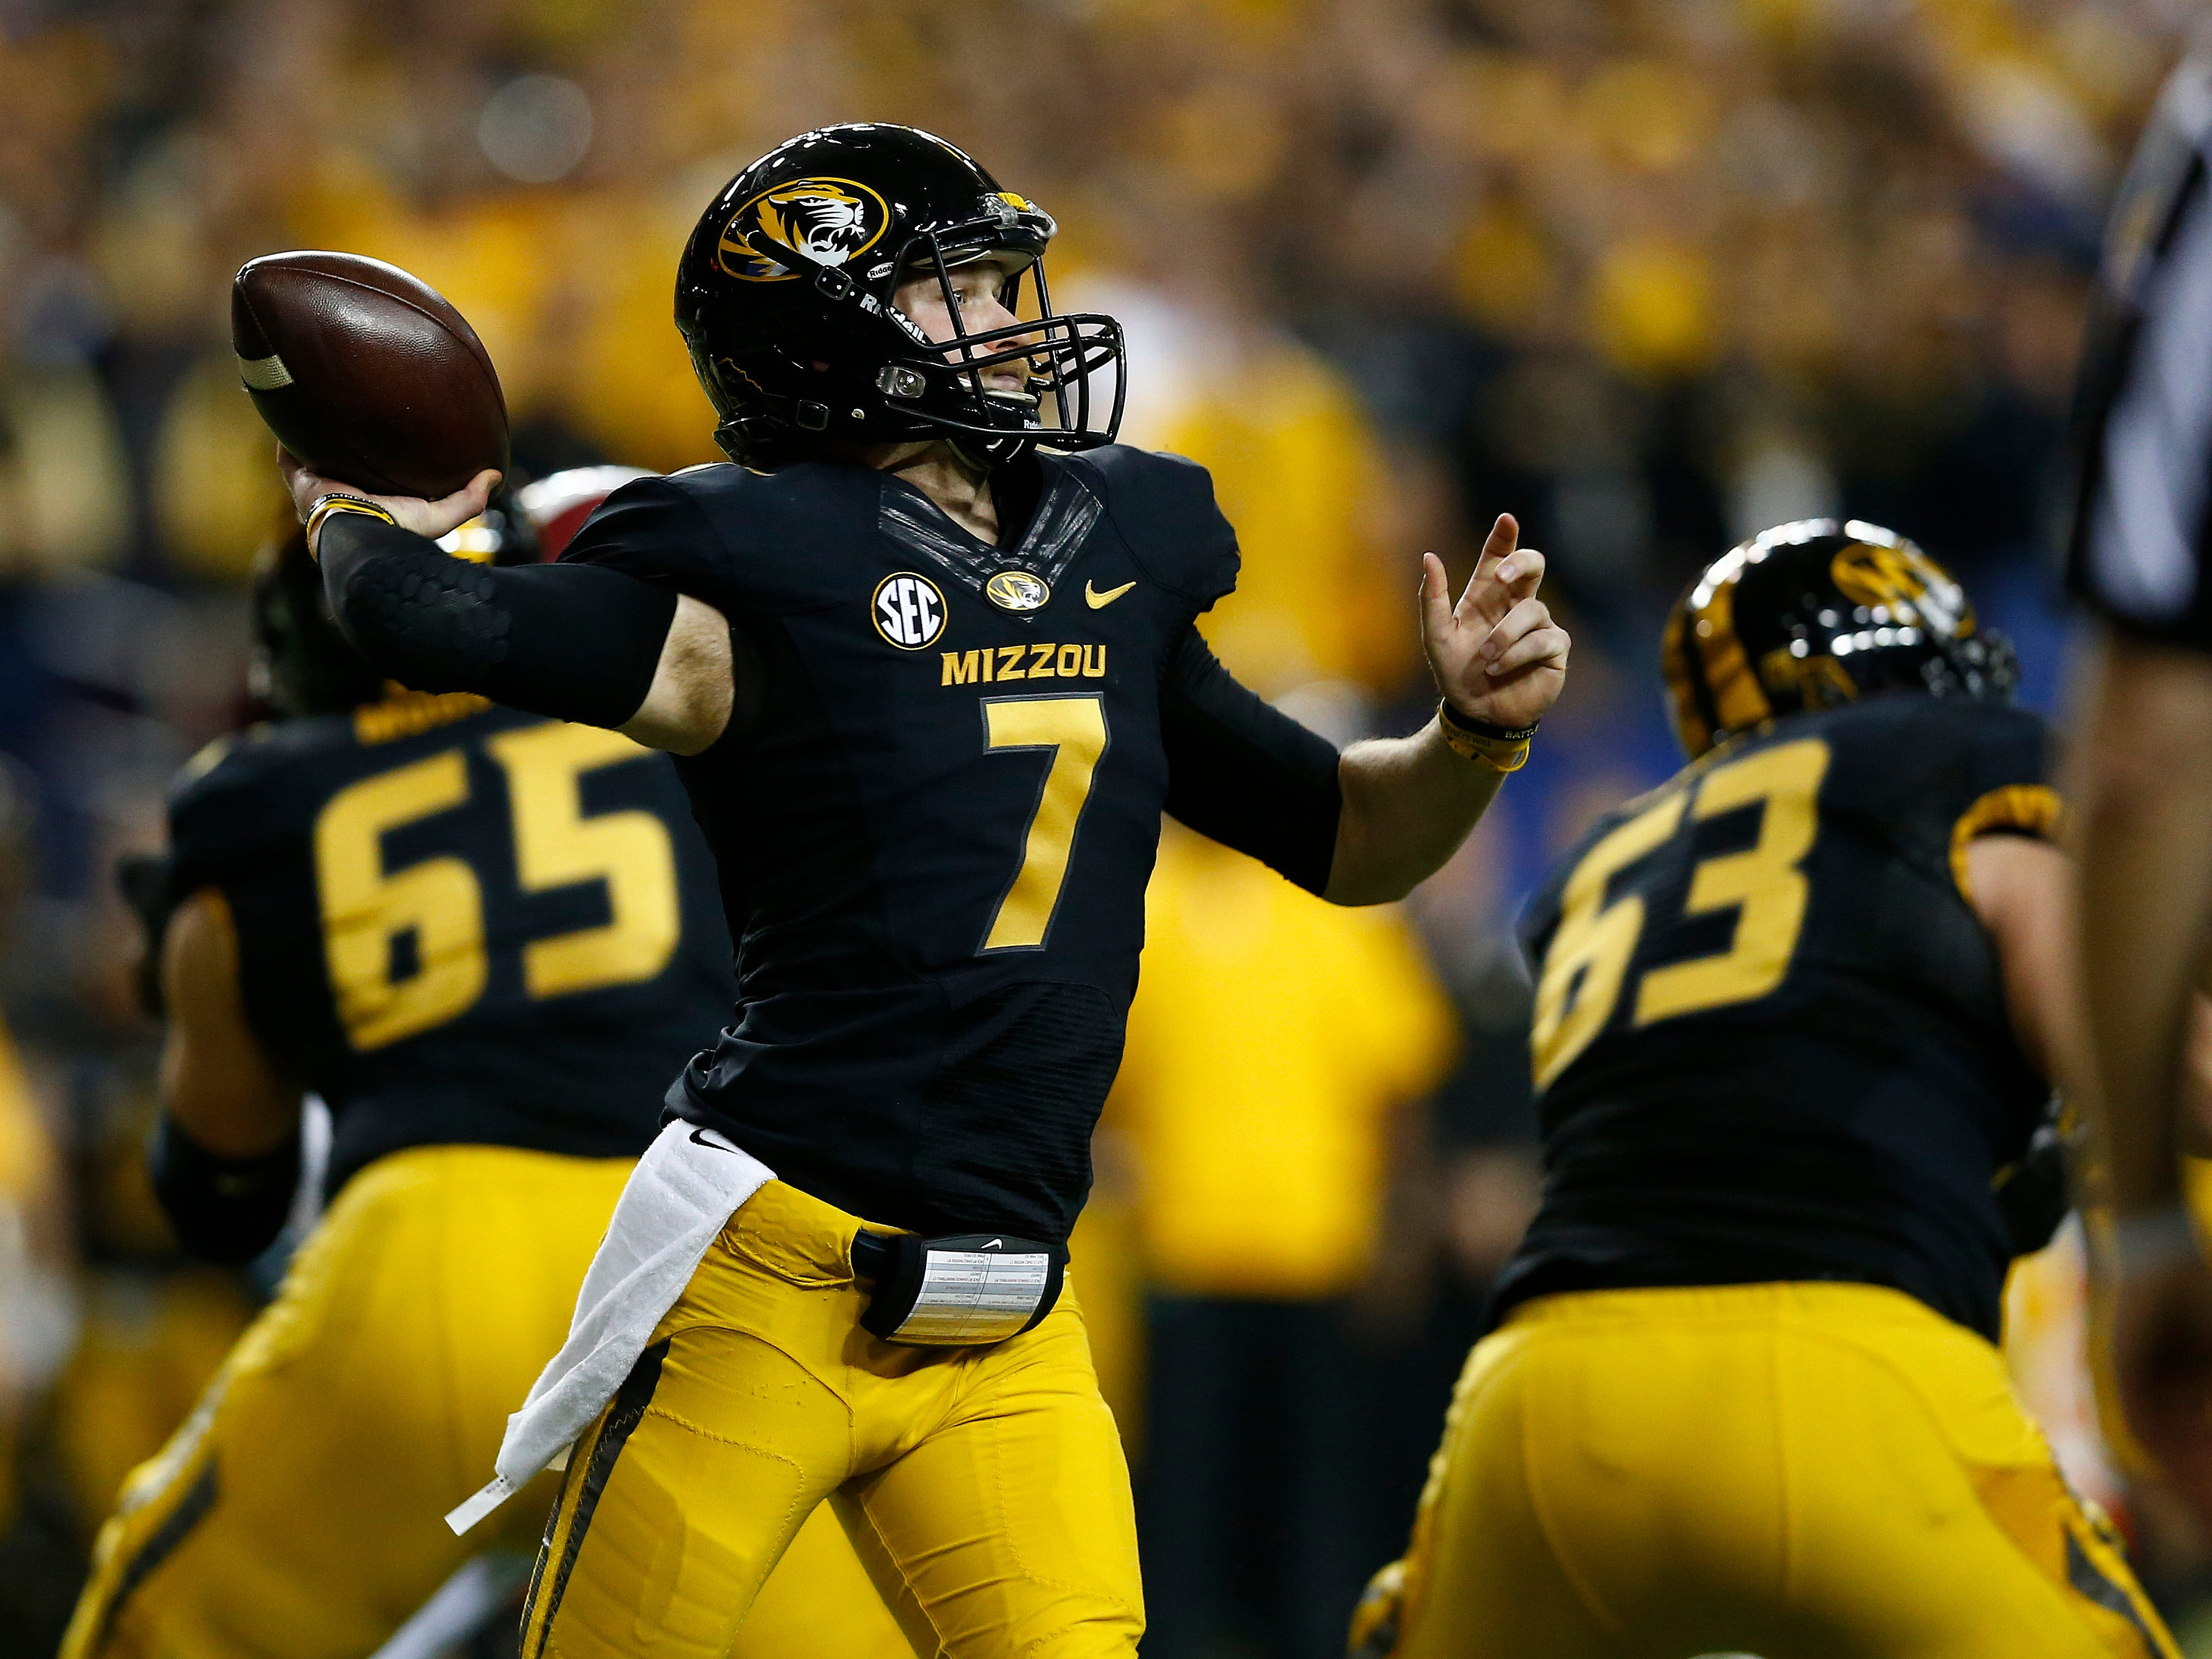 mauk single guys On the same day that florida freshman will grier was suspended indefinitely, missouri coach gary pinkel confirmed that junior quarterback maty mauk will miss his third straight game on saturday.